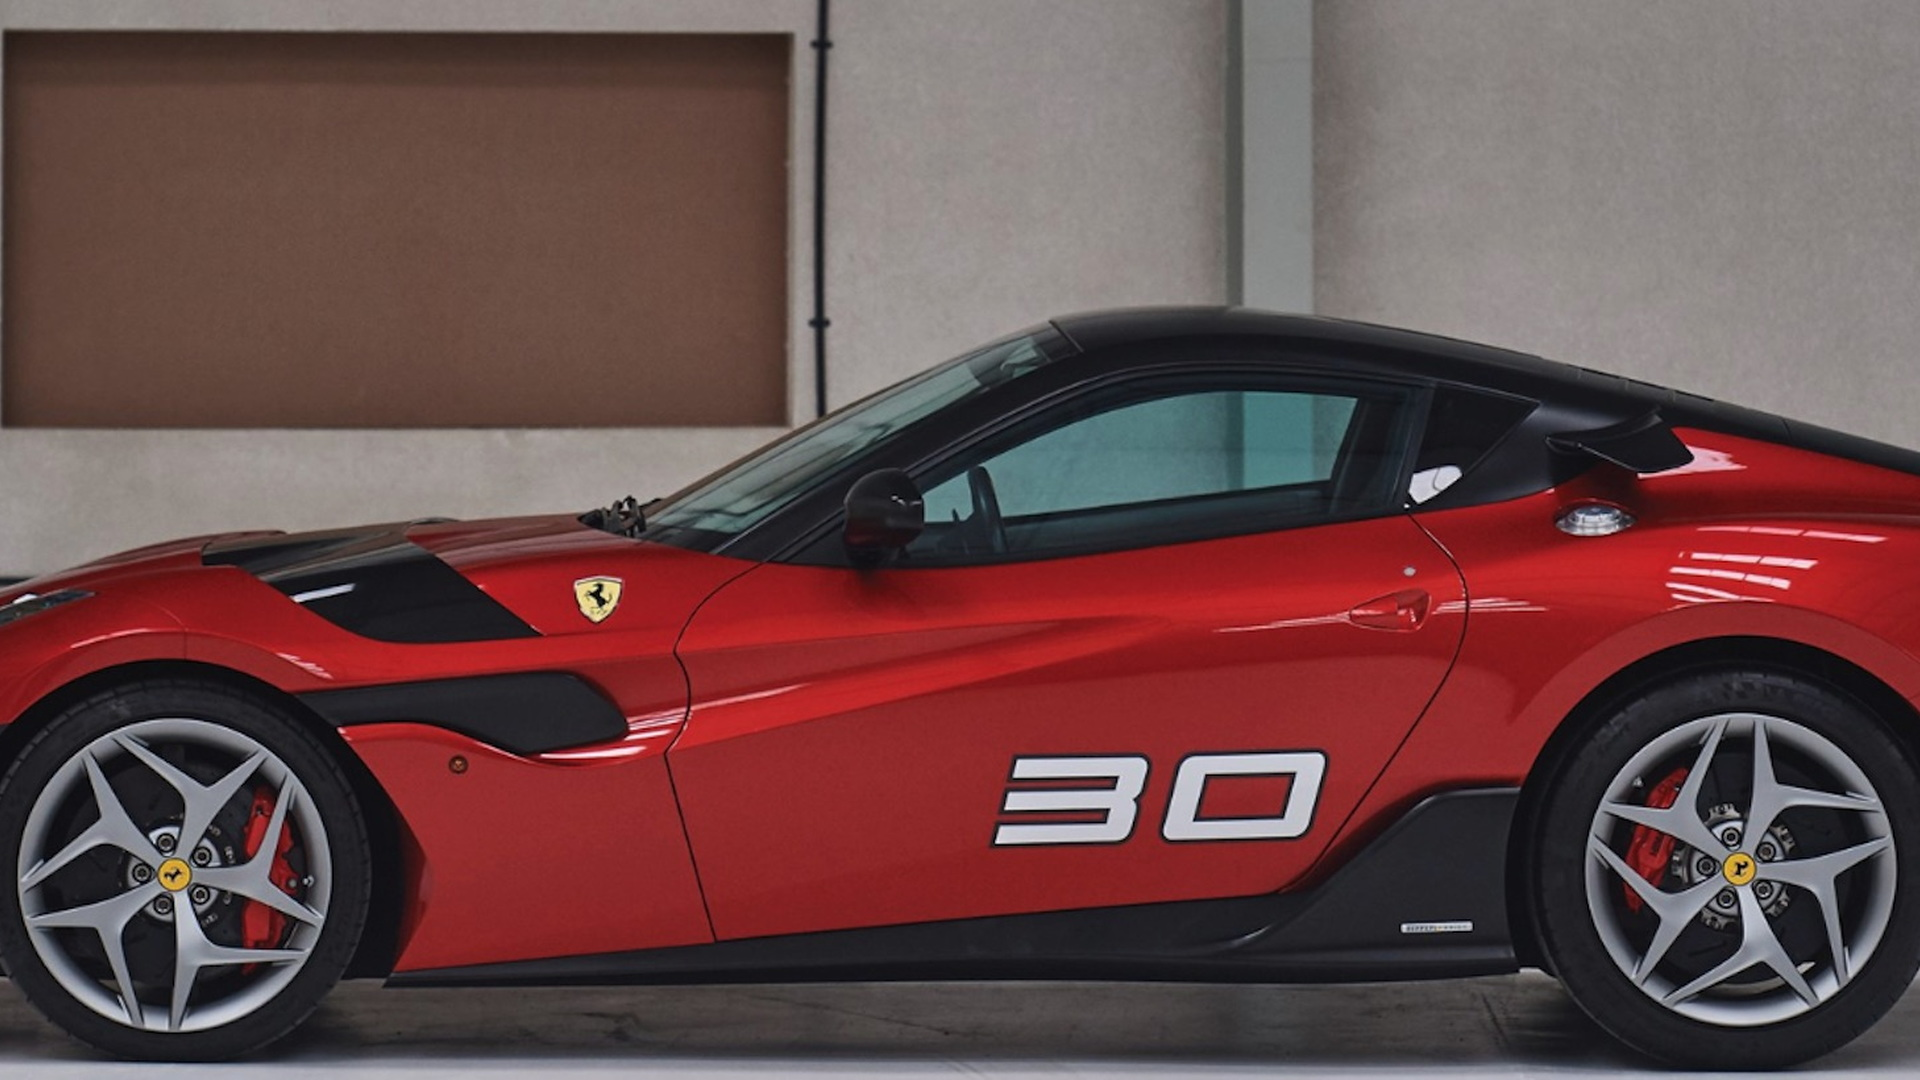 2011 Ferrari SP30 heading to auction, via RM Sothby's